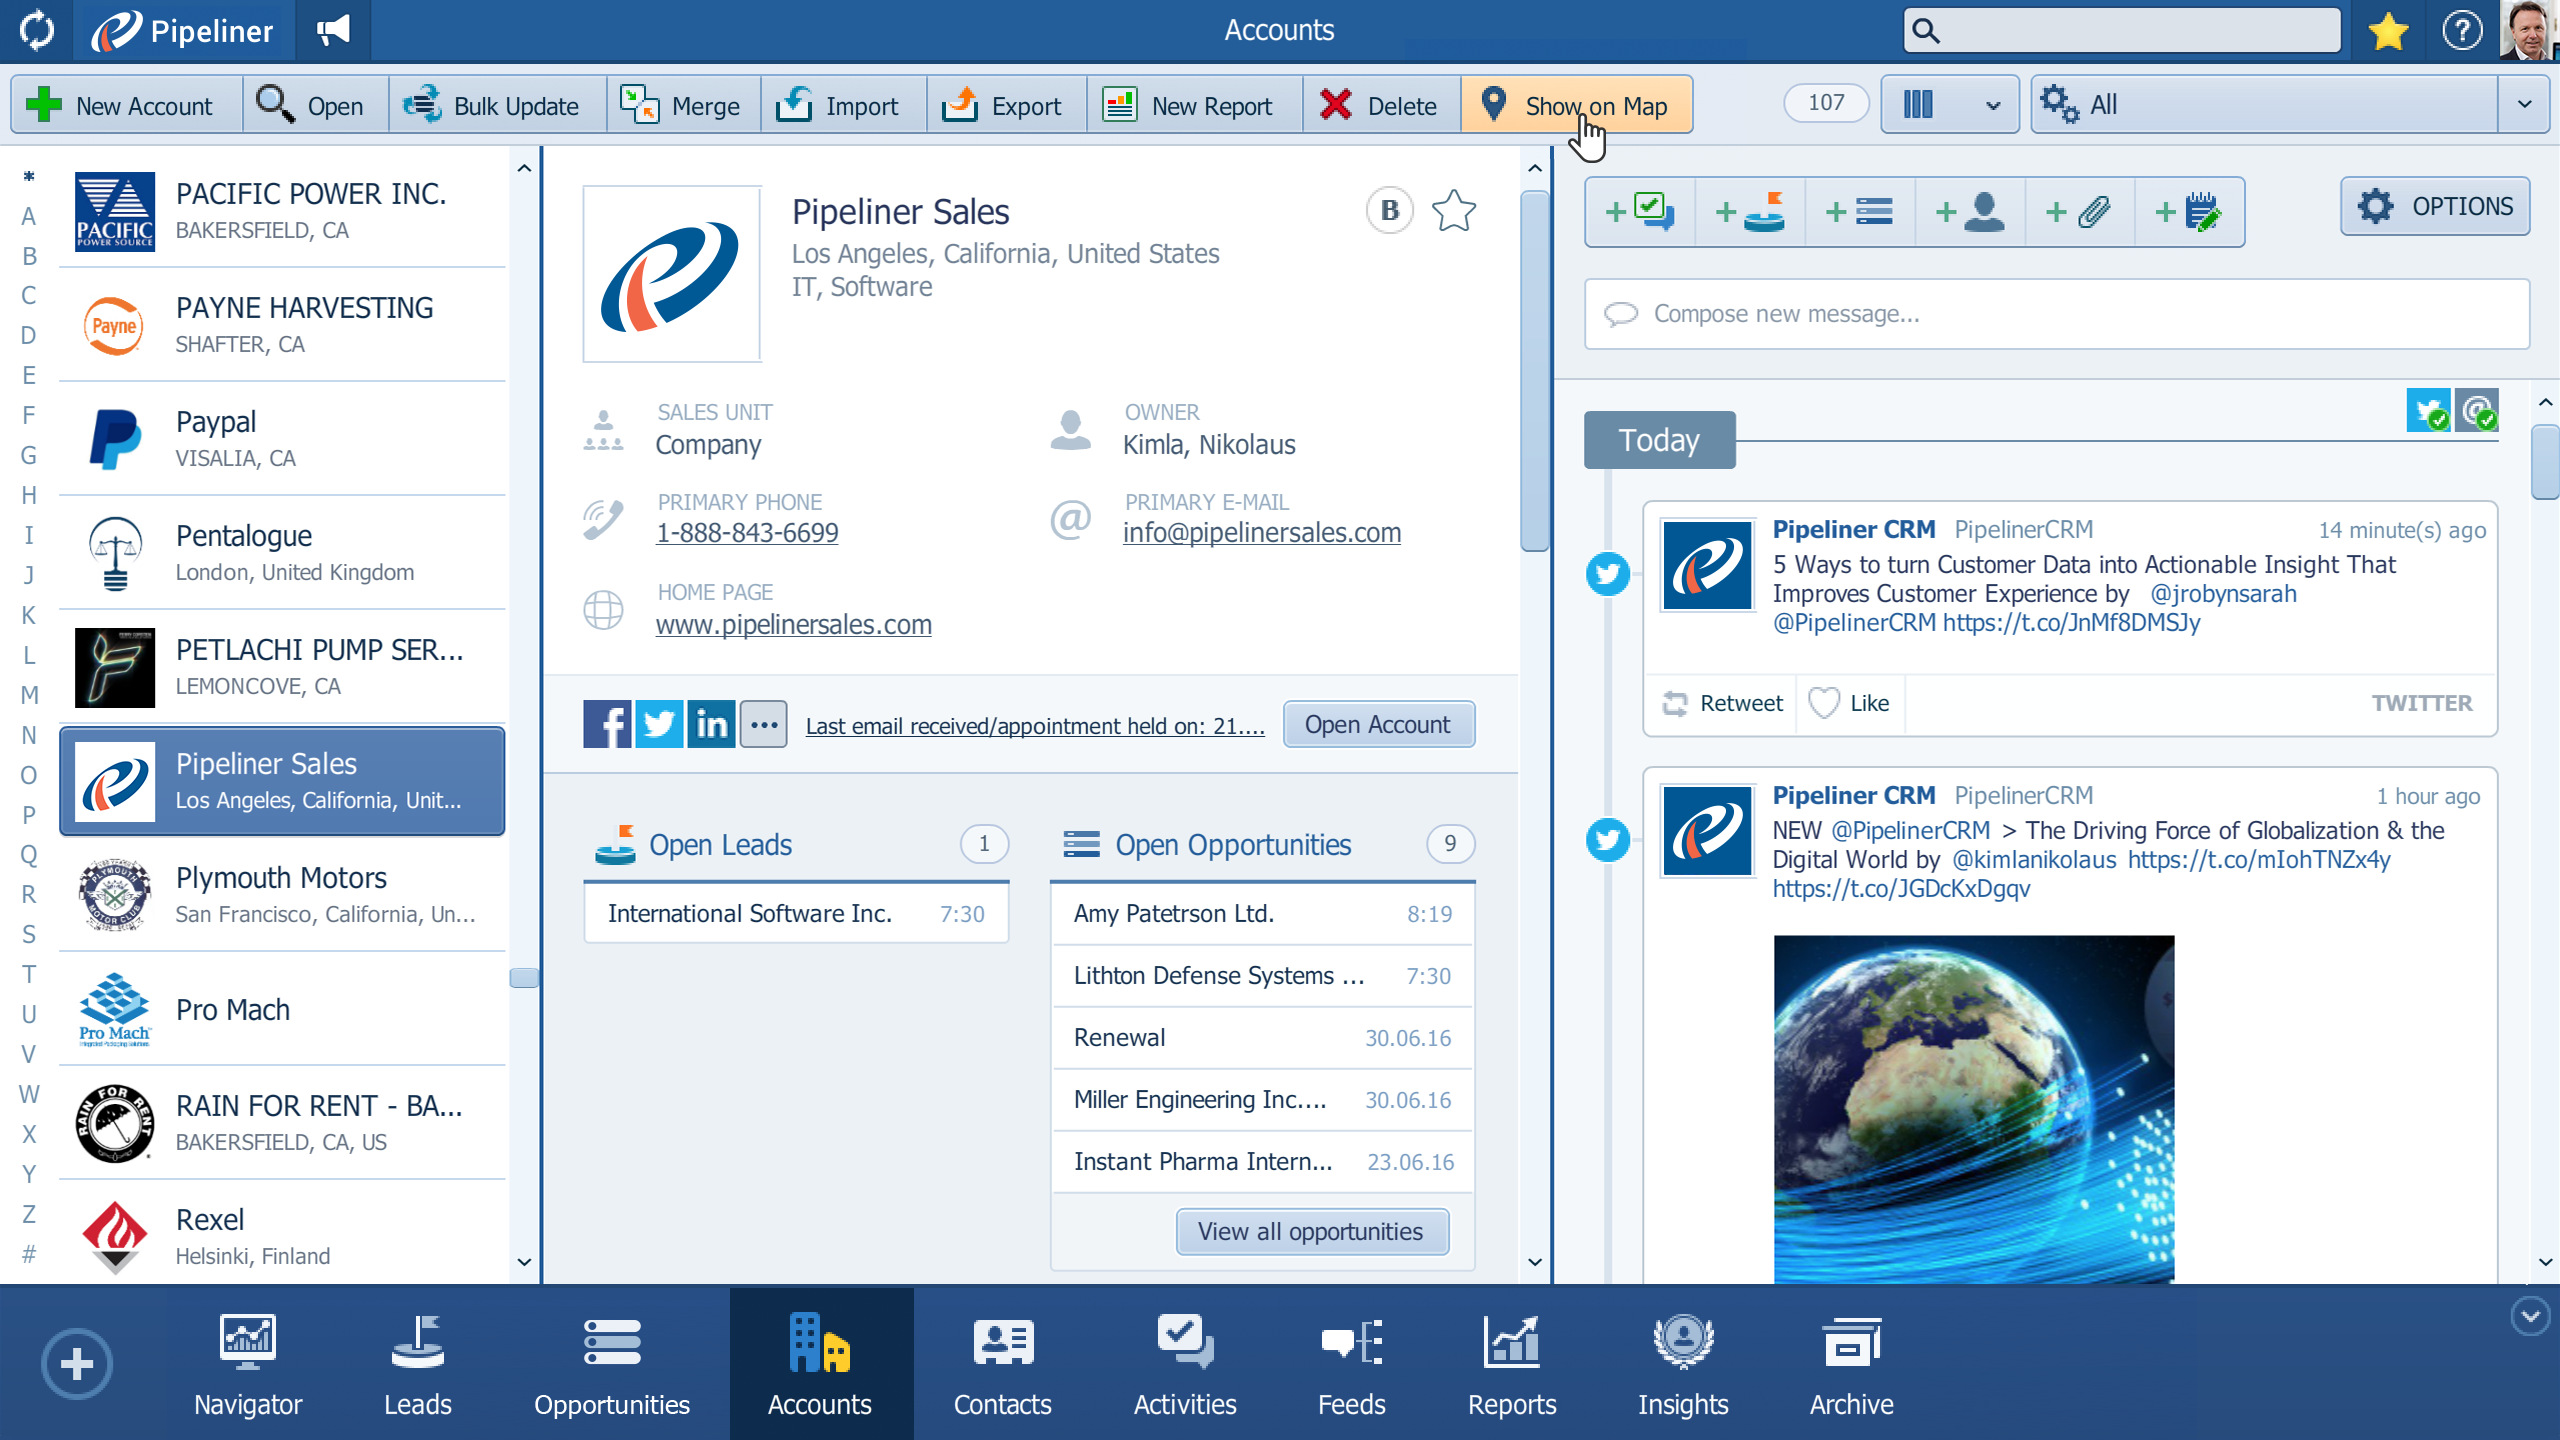 The Accounts and Contacts summary pane lists all your accounts and contacts in the Pipeliner CRM database, including relevant details